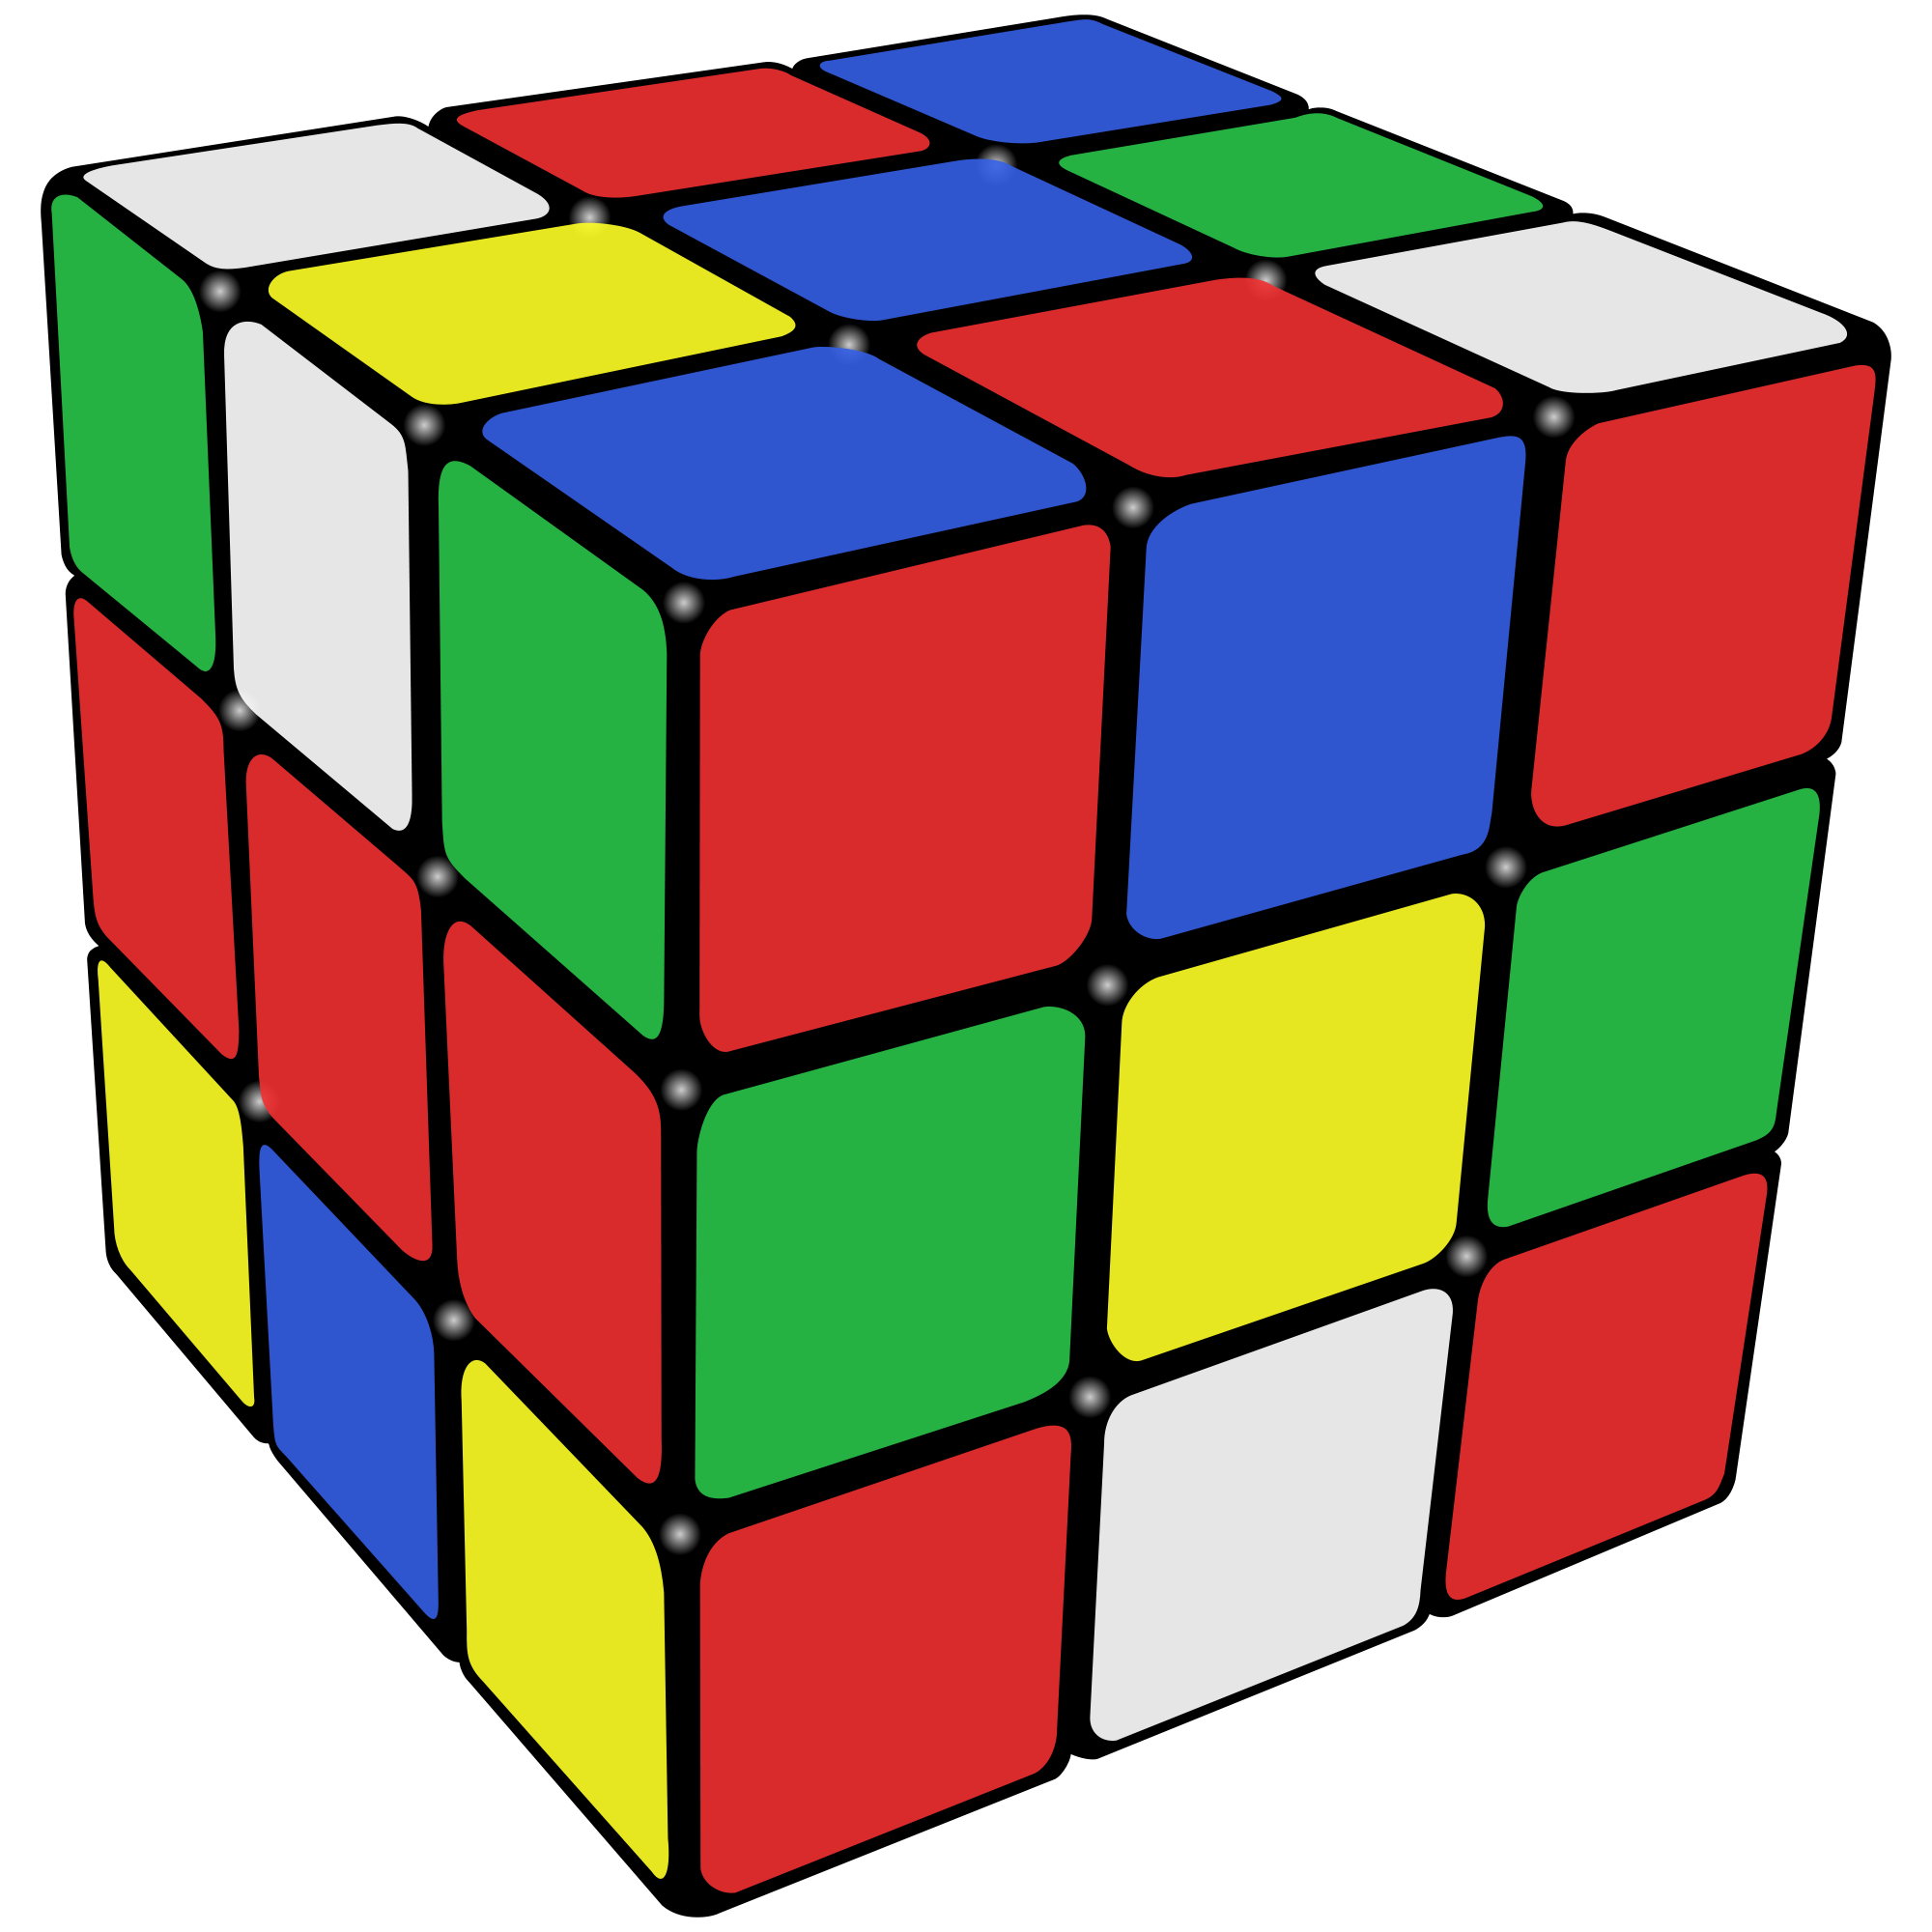 Rubik's Cube Backgrounds, Compatible - PC, Mobile, Gadgets| 2000x2000 px